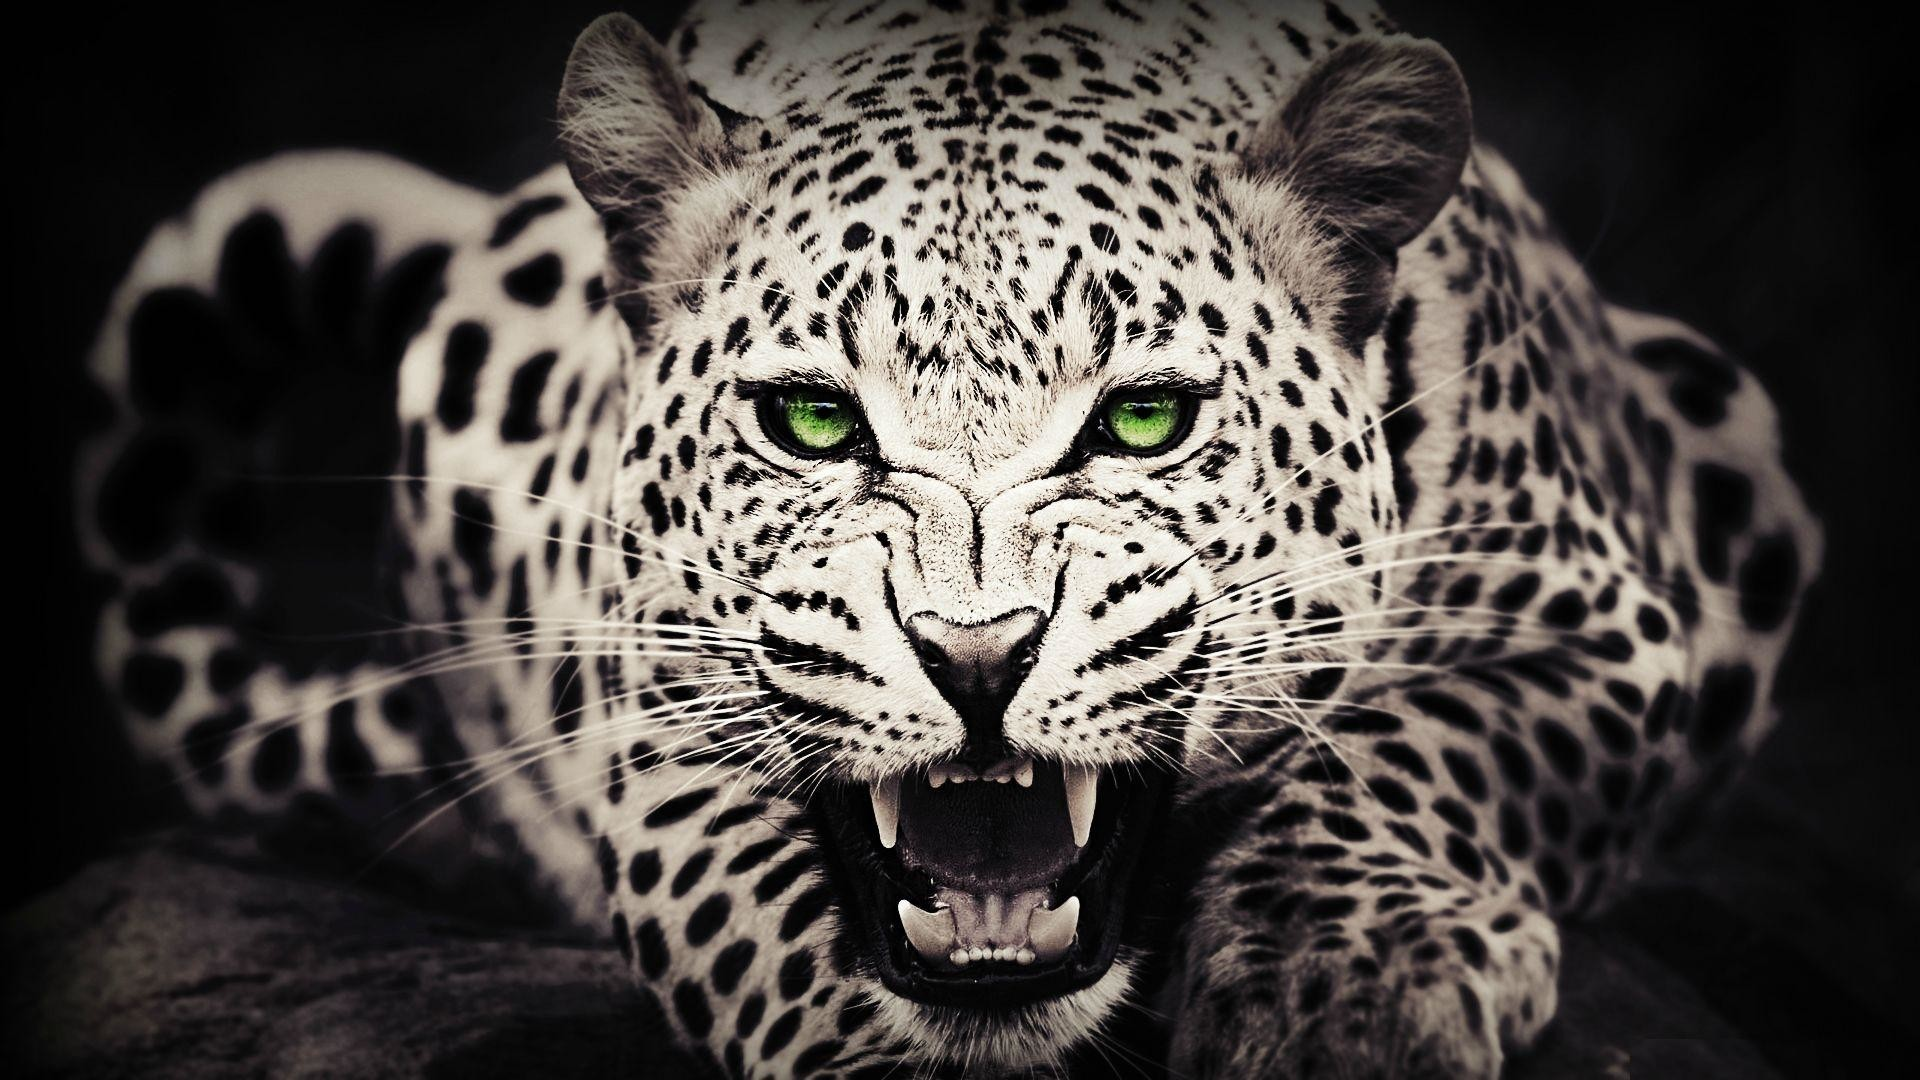 Cool Animal Wallpapers the best 62 images in 2018 1920x1080